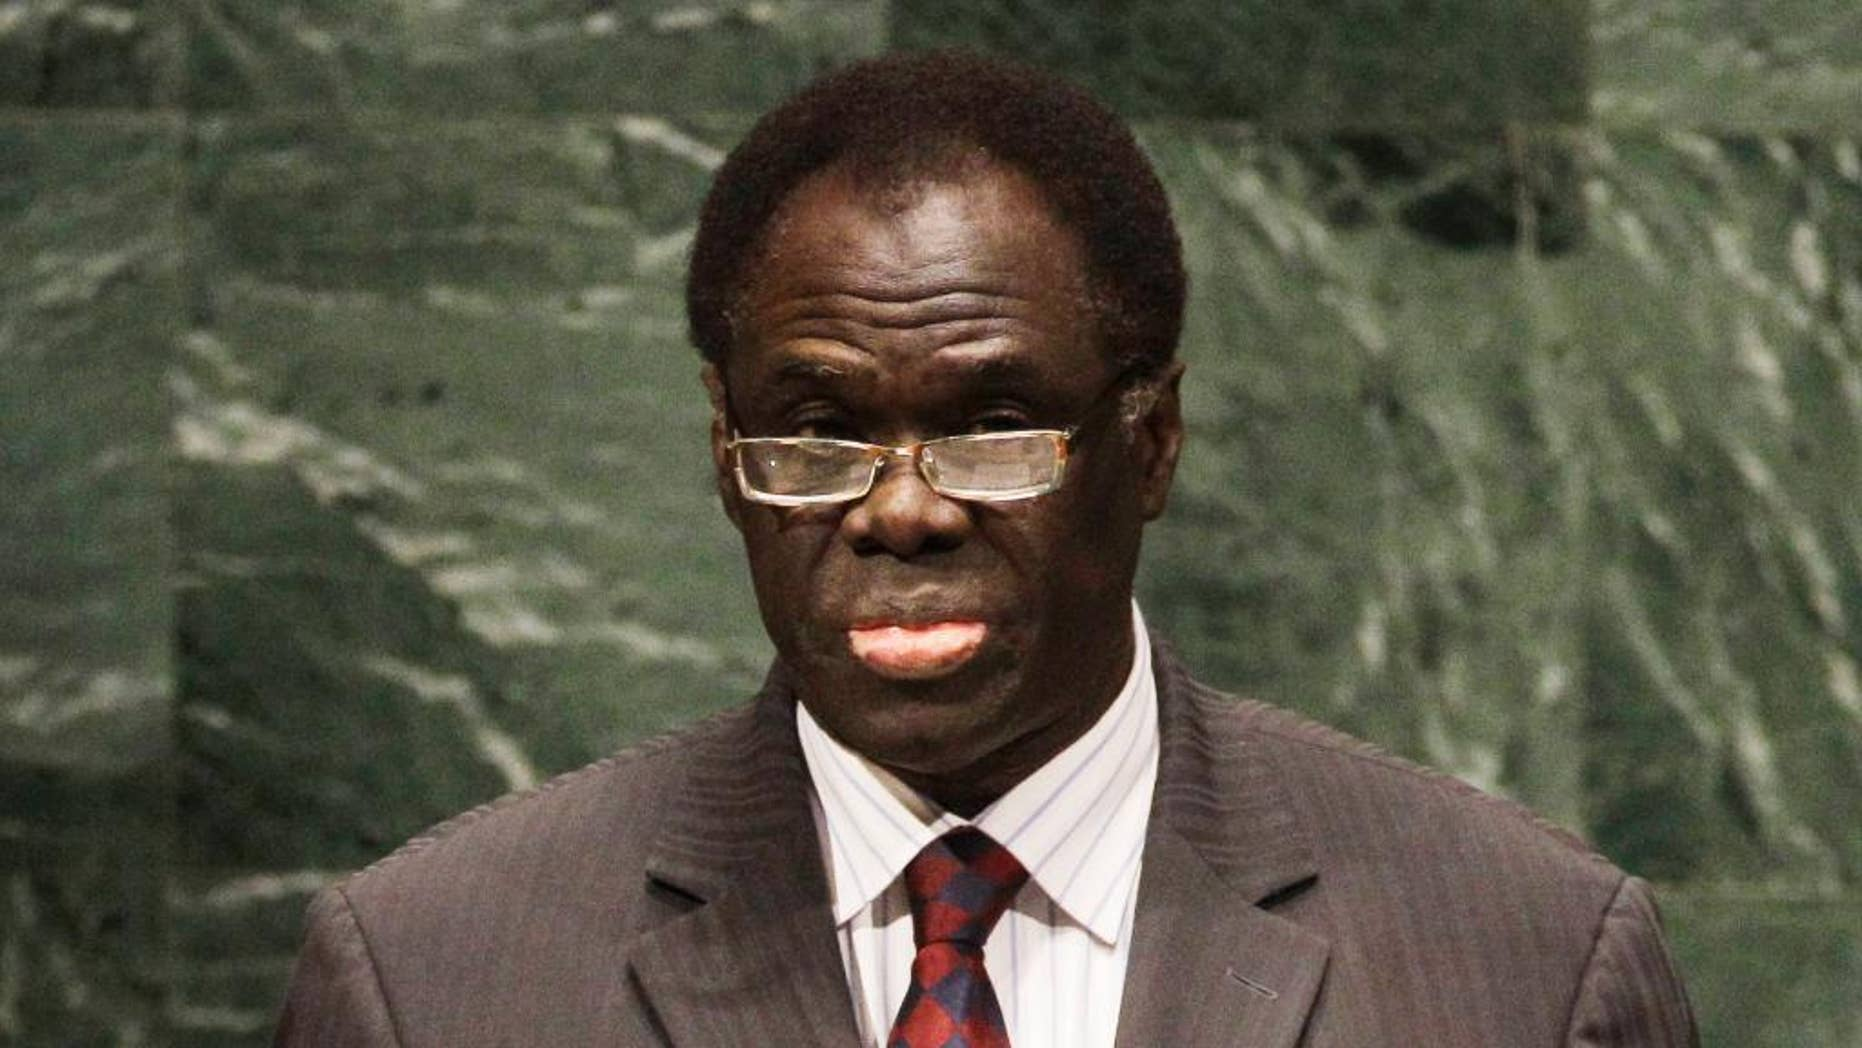 In this Tuesday, Sept. 28, 2010, photo Michel Kafando, Chairman of the Delegation of Burkina Faso addresses the 65th session of the United Nations General Assembly at U.N. headquarters in New York. Burkina Faso's former ambassador to the United Nations is slated to be in charge of a civilian transitional government after the military briefly seized control of the country last month. Michel Kafando, 72, was named early Monday, Nov. 17, 2014, as transitional president to lead Burkina Faso until elections a year from now. (AP Photo/Frank Franklin II)